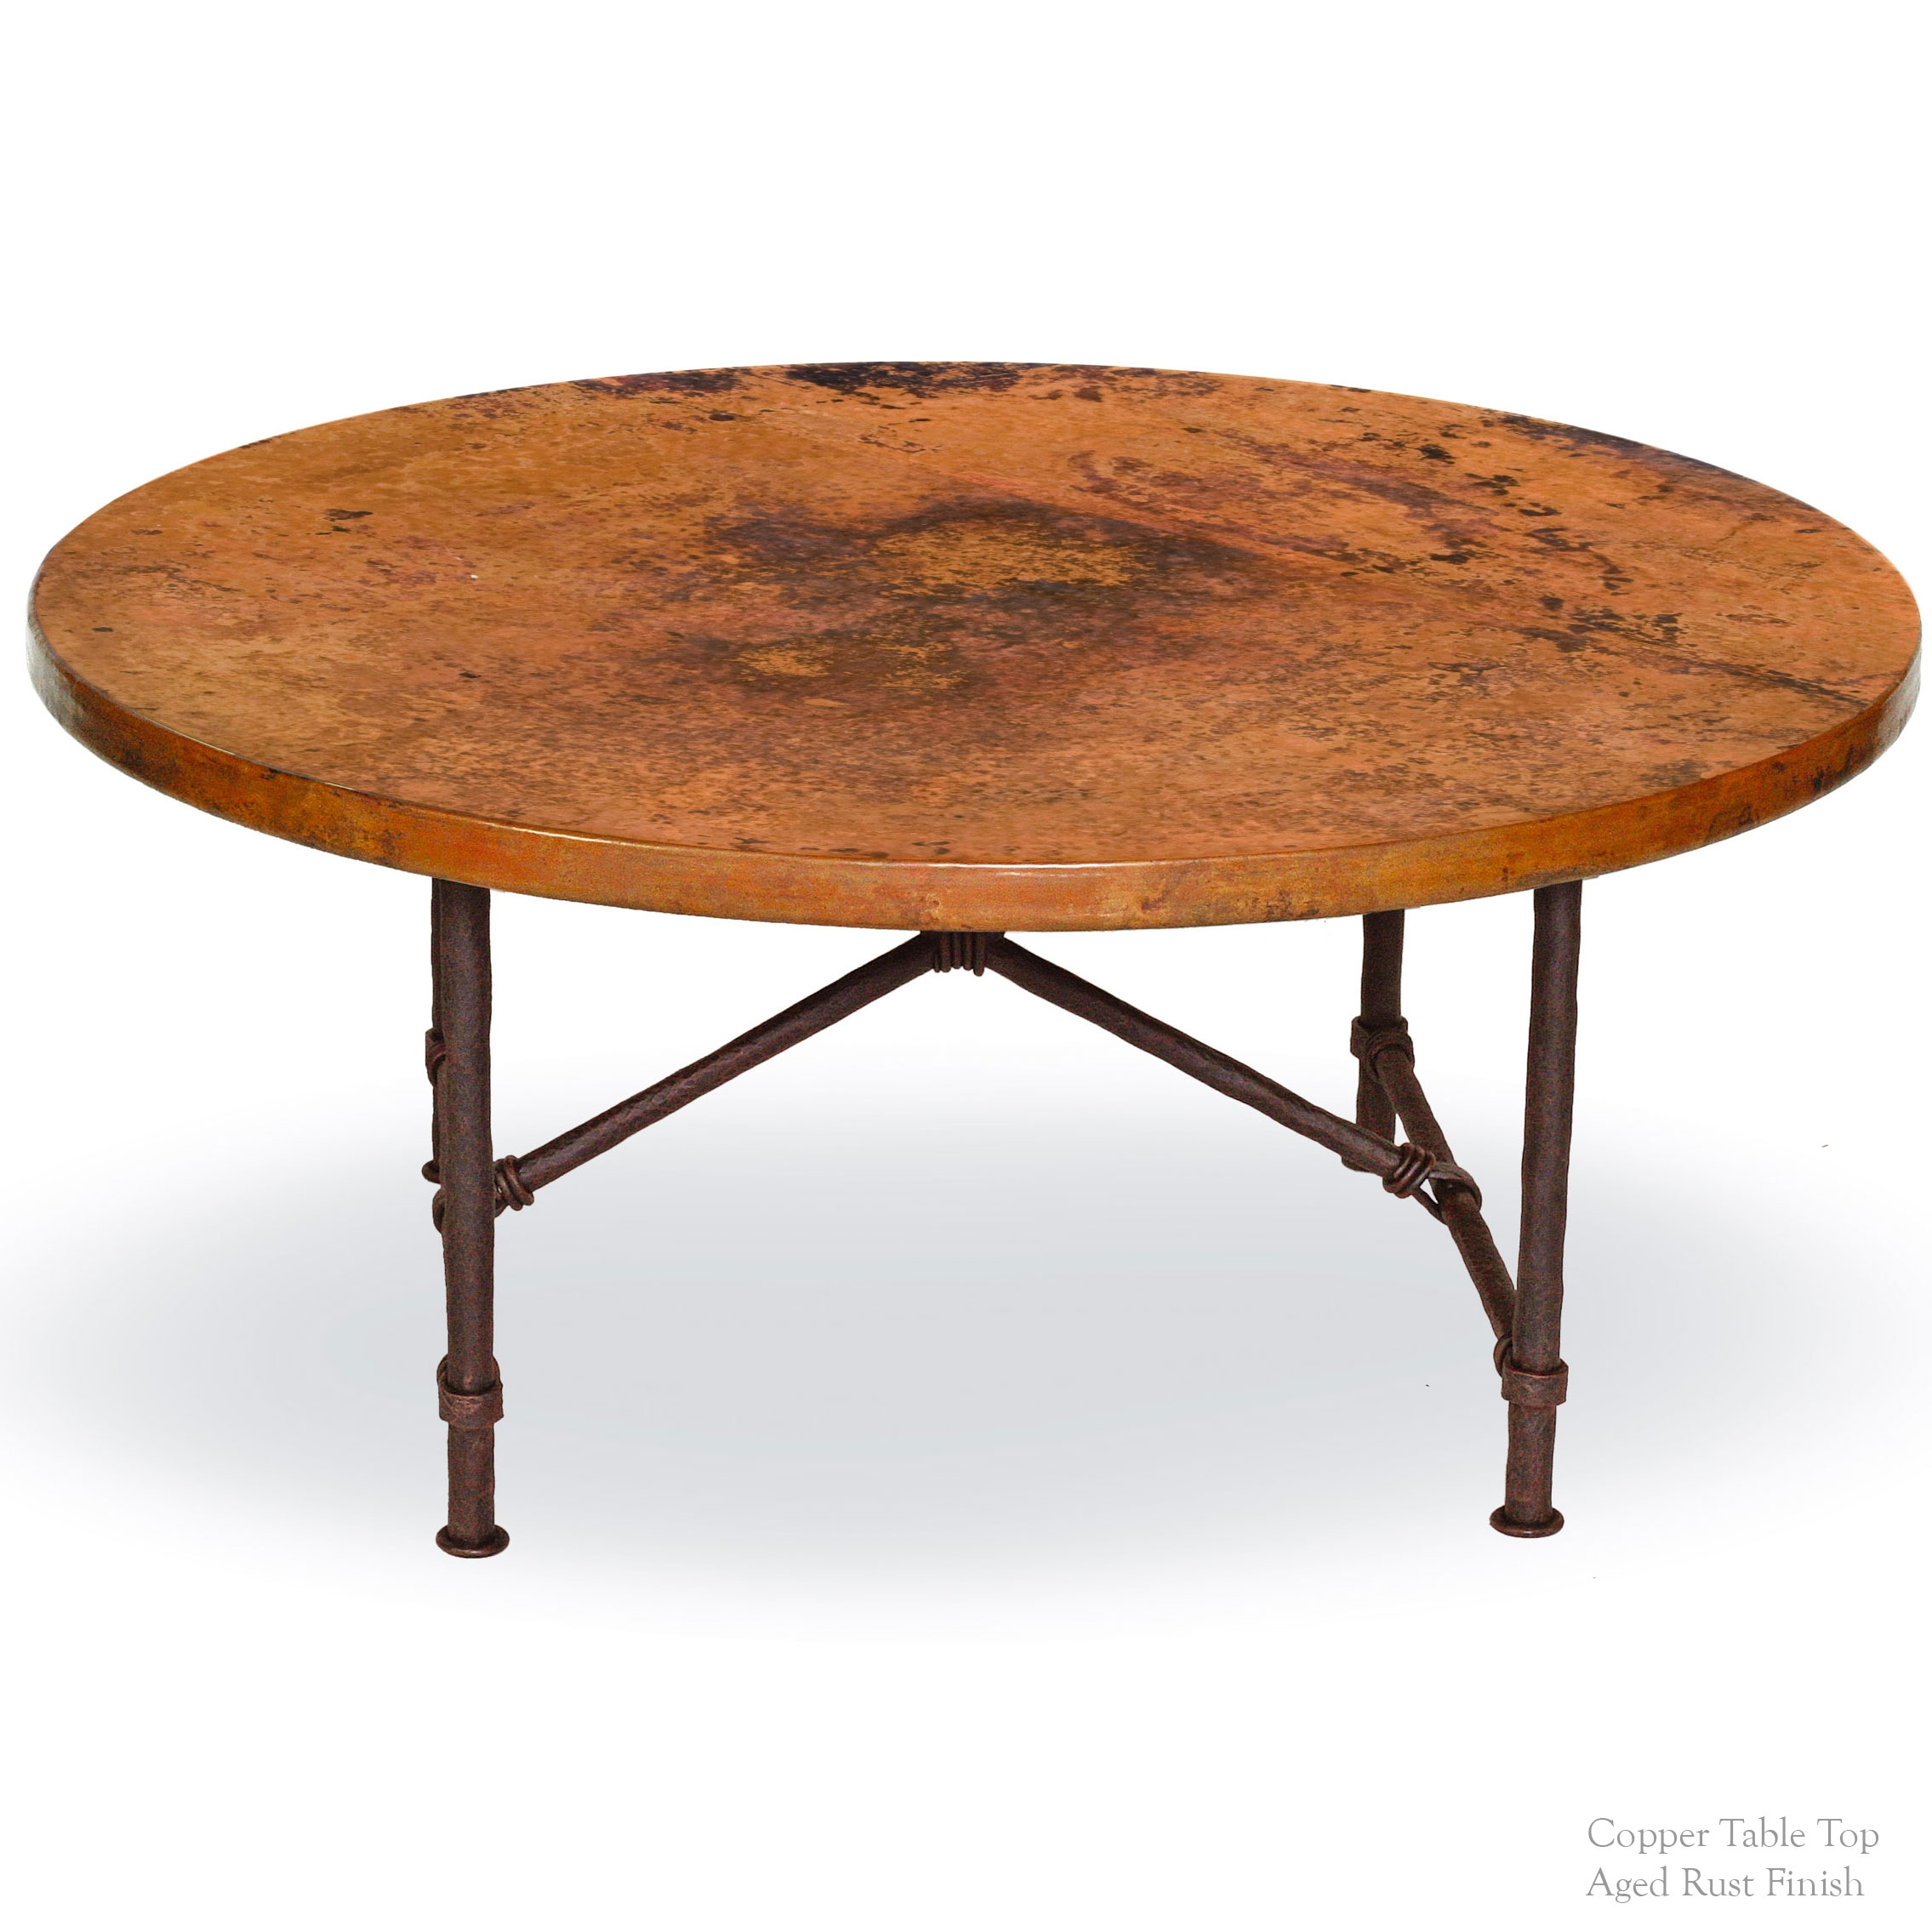 Pictured Here Is The Burlington Coffee Table With 42 Round Top Hand Crafted By Skilled Artisan